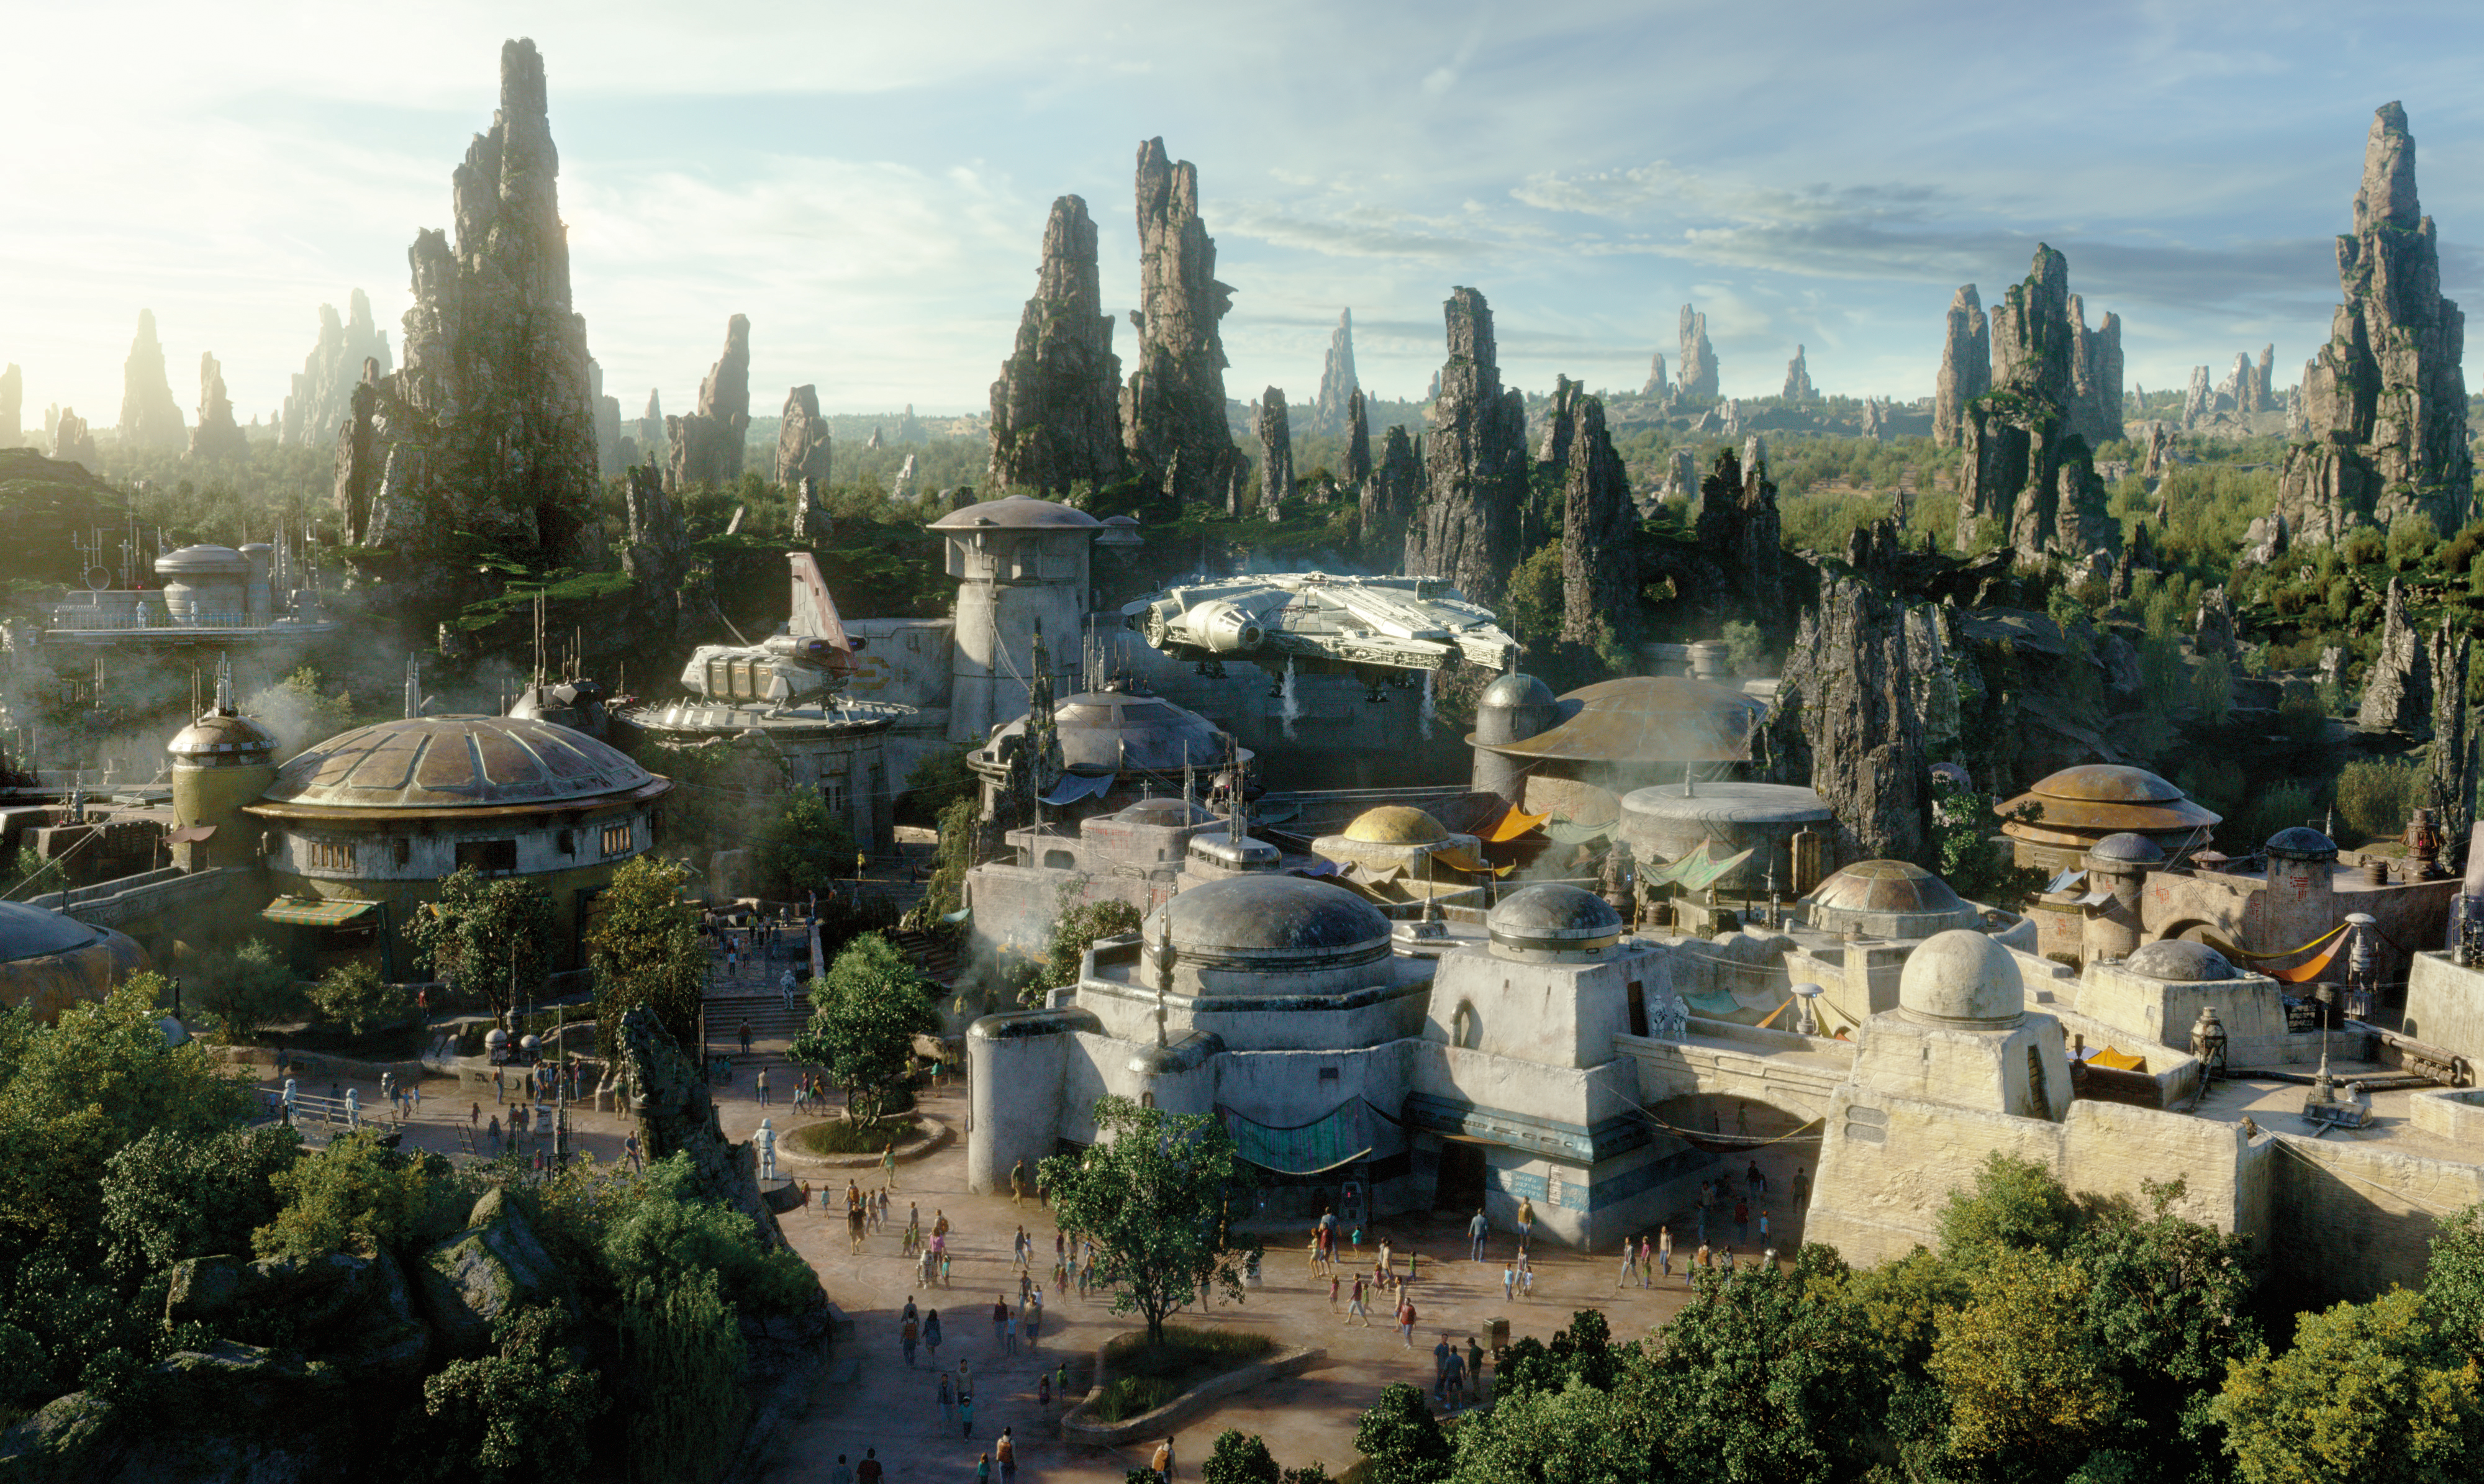 Concept art for Star Wars: Galaxy's Edge